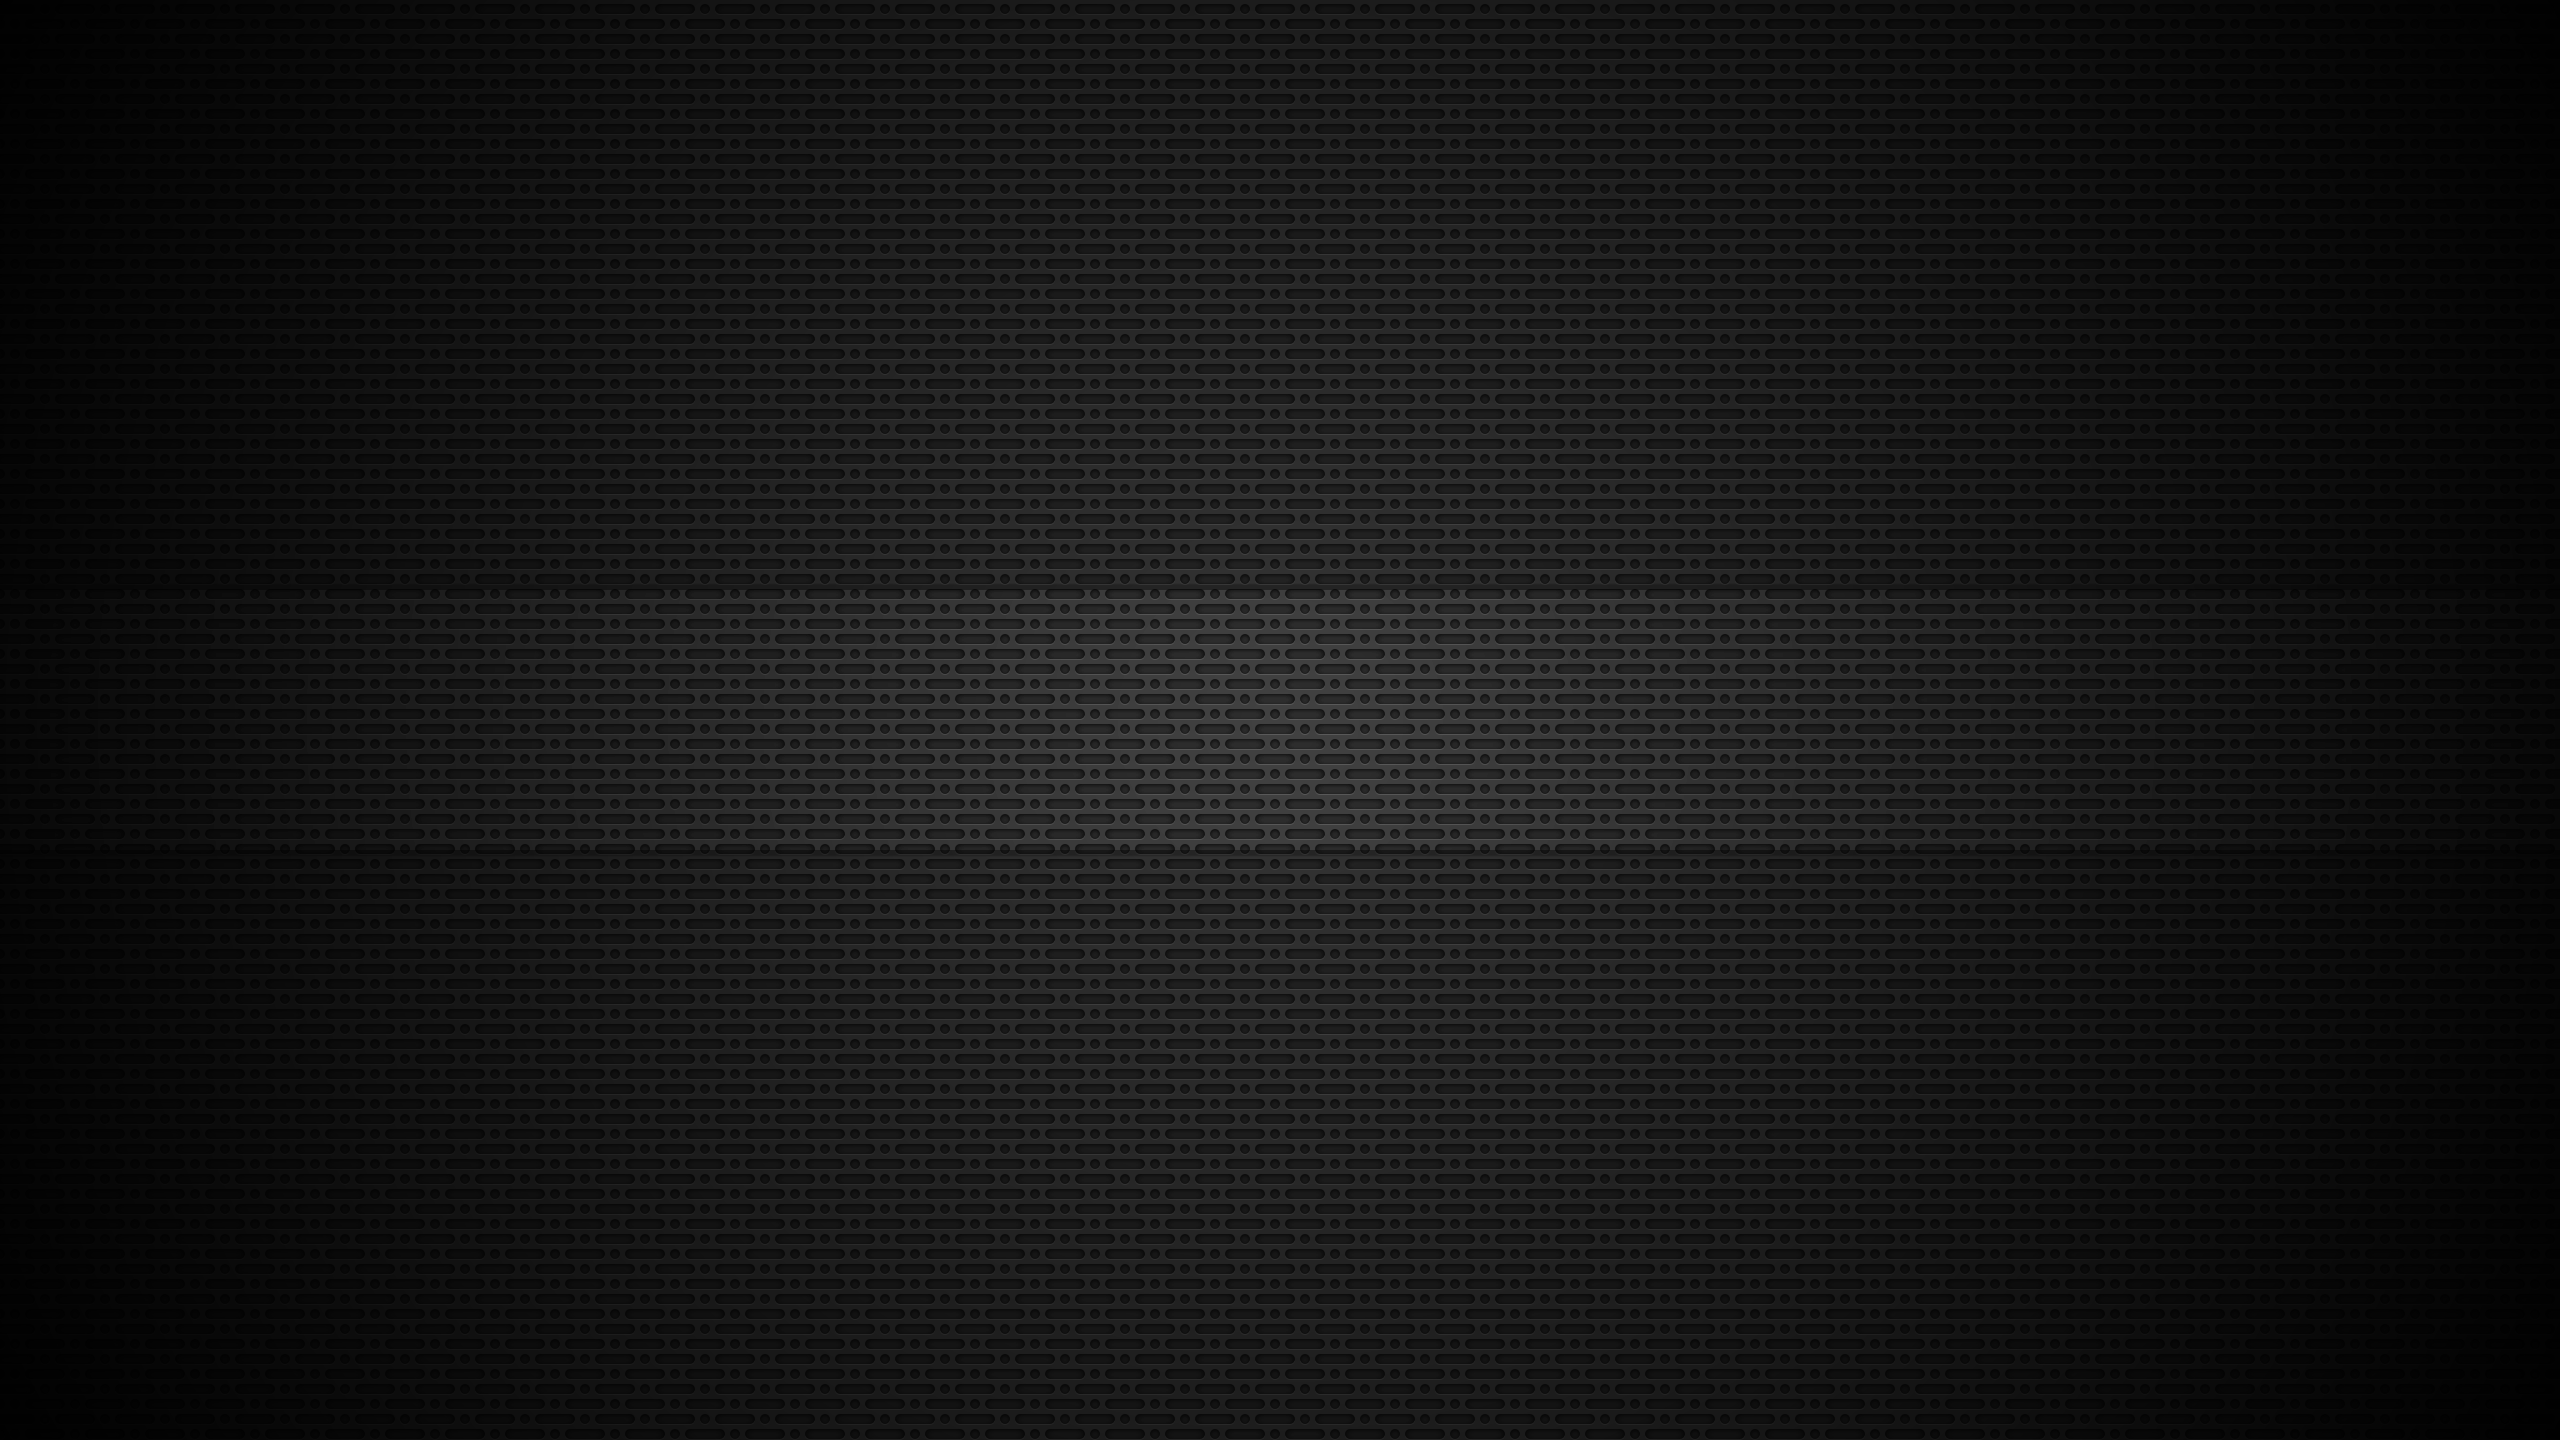 Youtube Backgrounds 2560x1440 20 youtube one channel 2560x1440